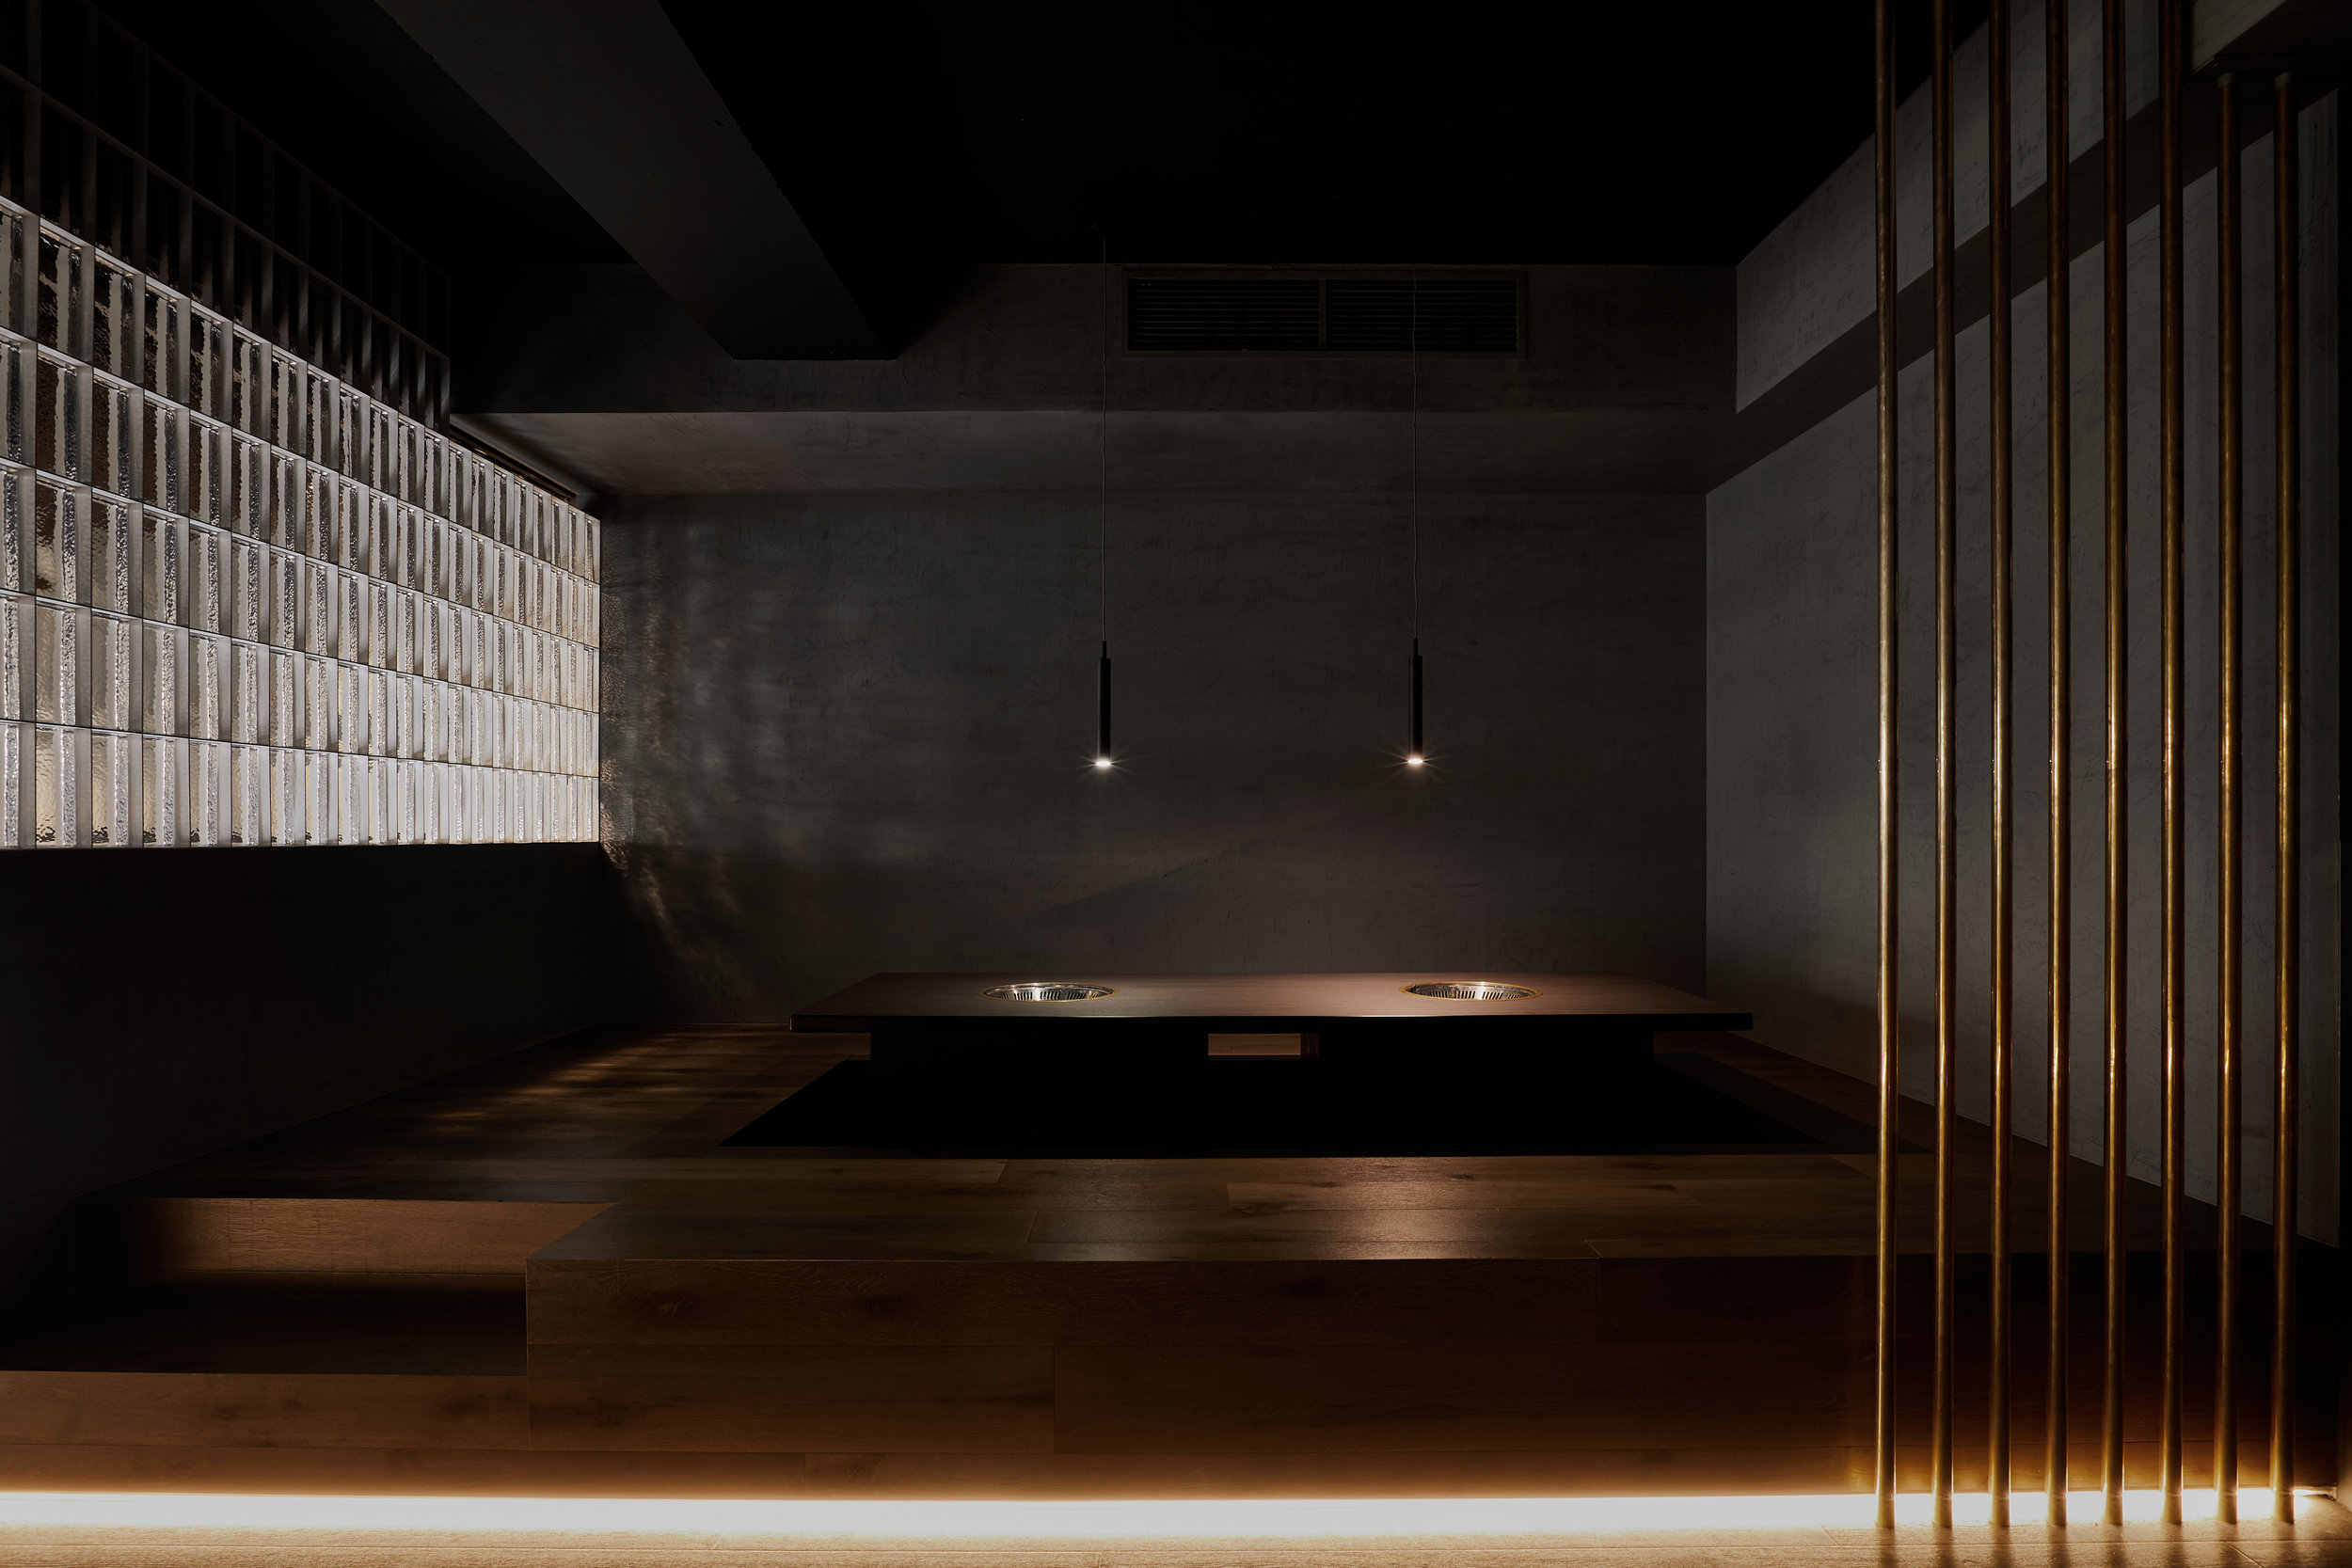 Pierce Widera received a High Commendation in the Hospitality Design category for Shinbashi restaurant at the 2019 Australian Interior Design Awards. Photo © Jana Langhorst